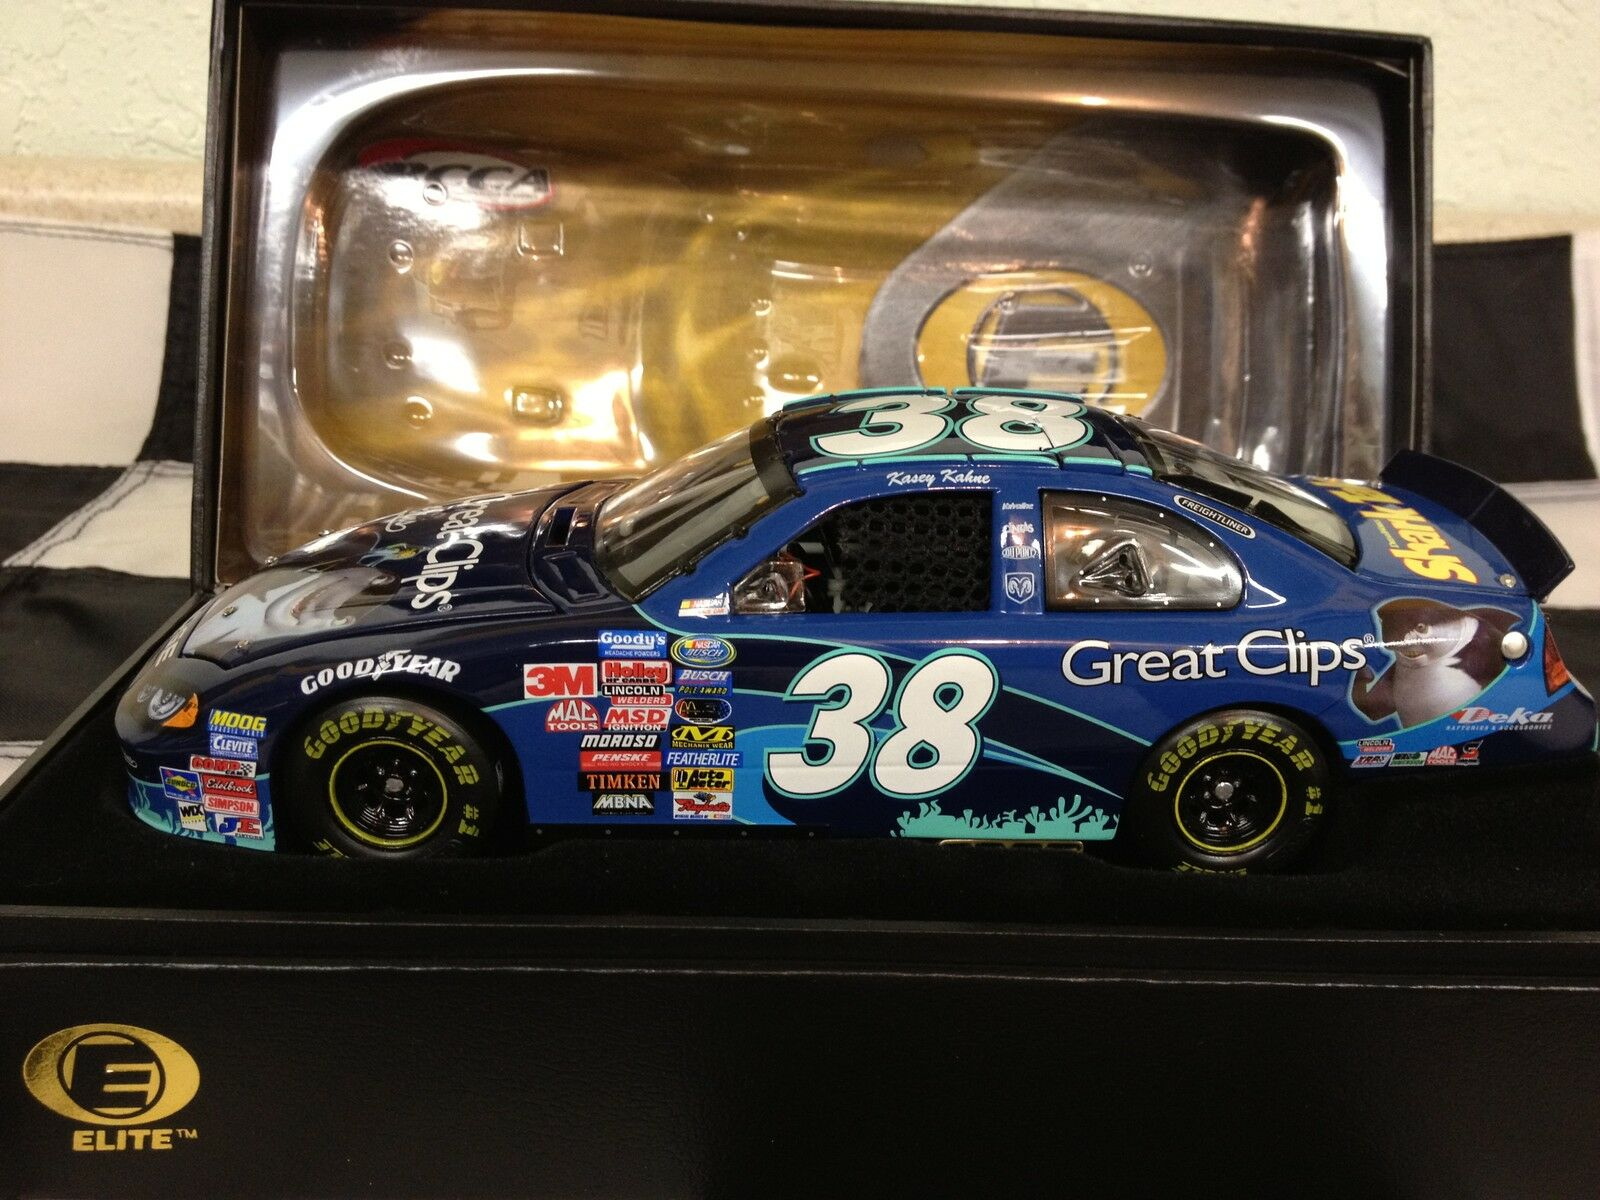 RCCA 1 24 2004 2004 2004 Kasey Kahne Great Clips  Shark Tale Elite 1 of 560 made  d9a00c